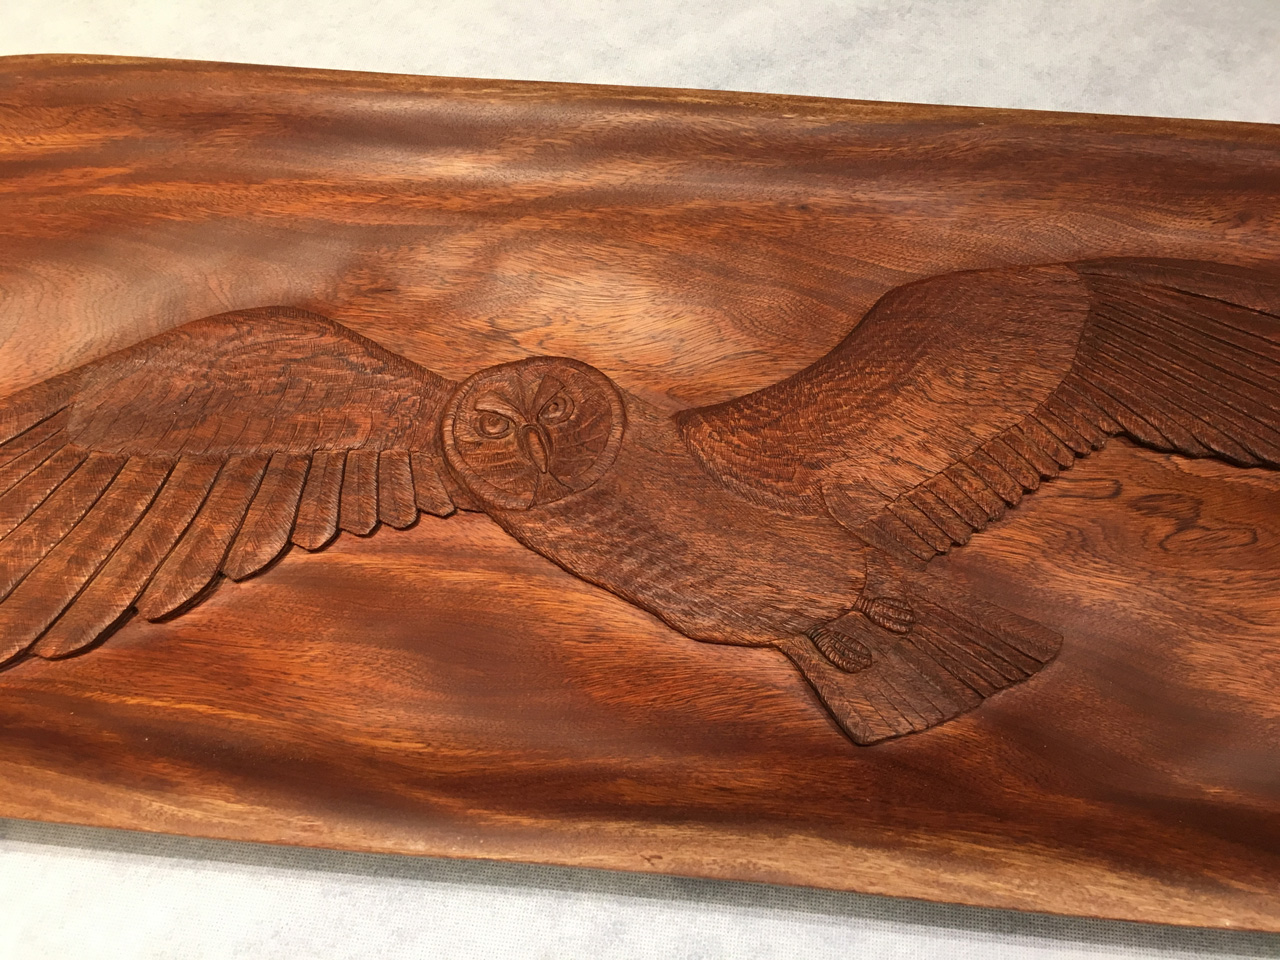 Kamani Wood with Pueo Owl Carving